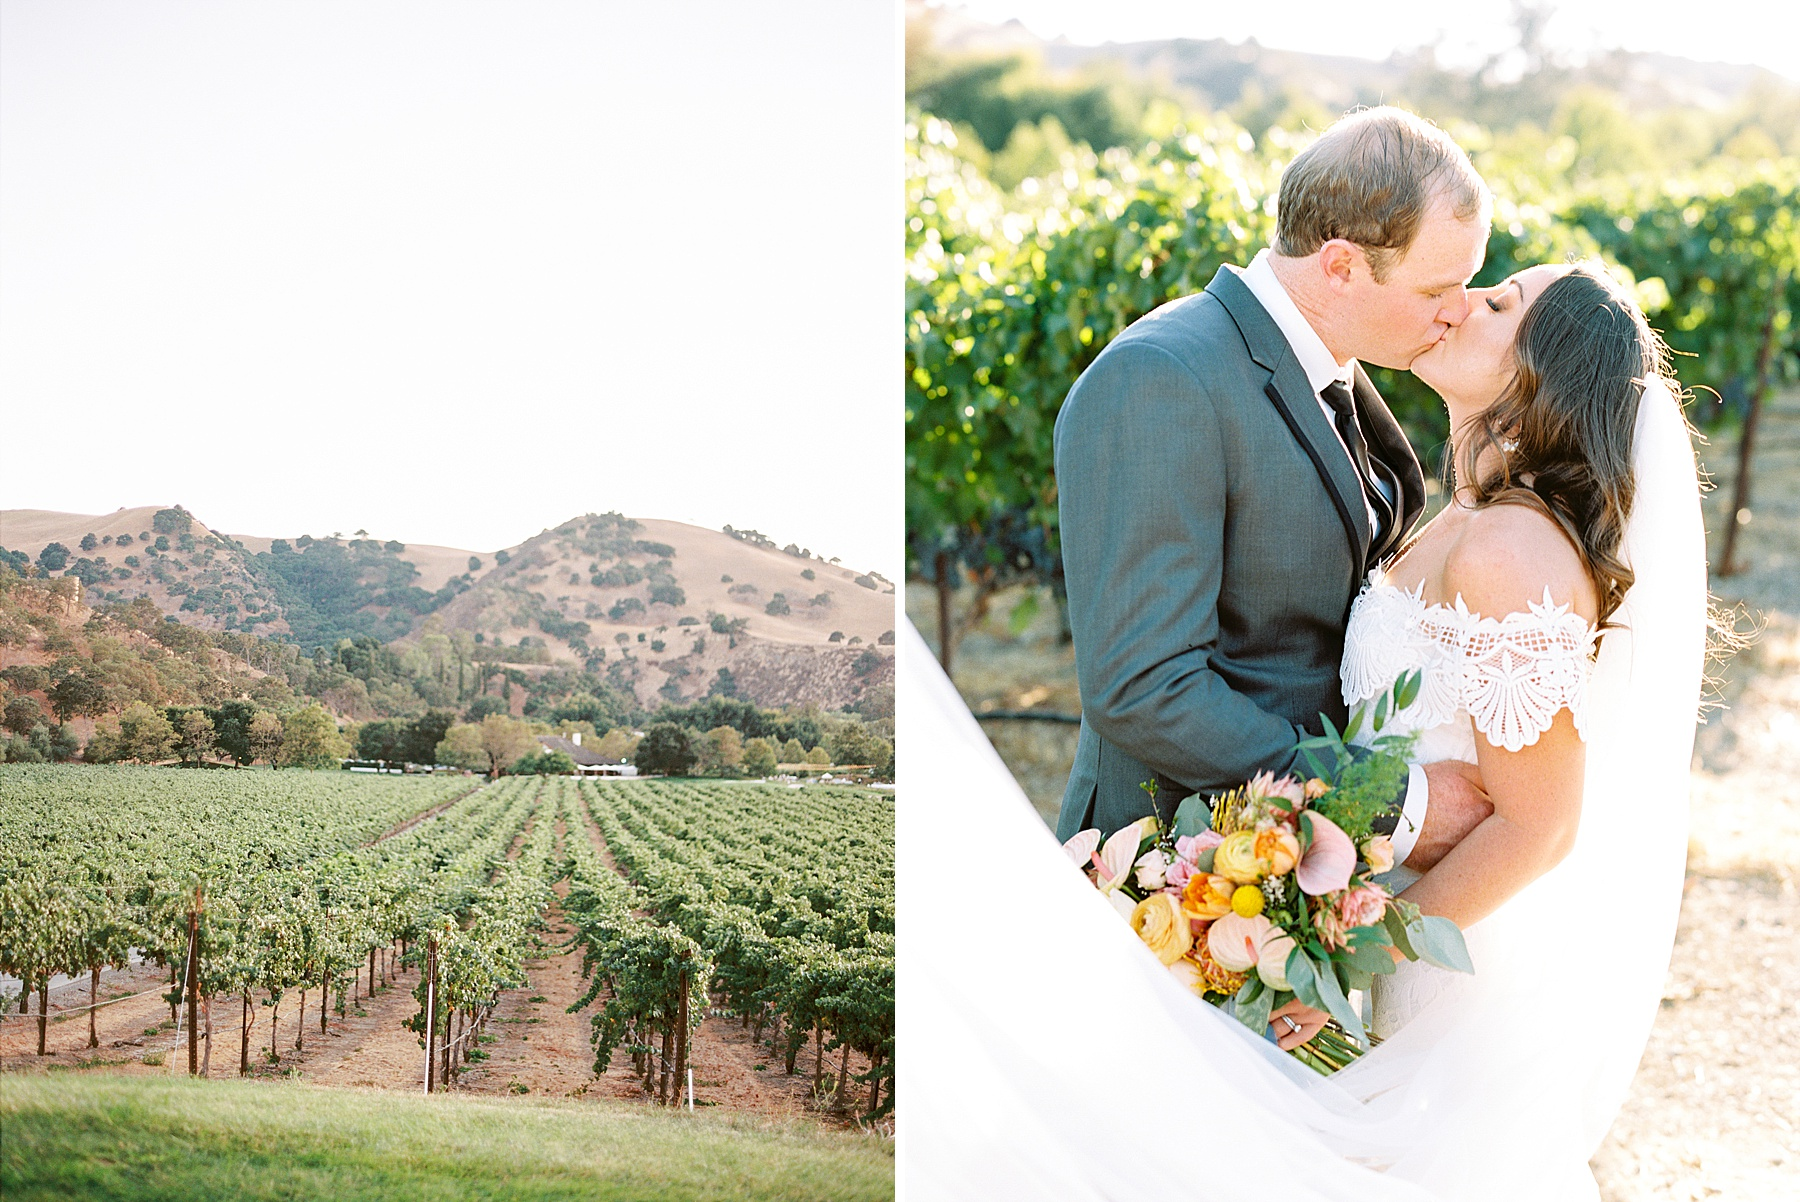 Wente Wedding with A Tropical Color Palette - Ashley & Mike - Featured on Inspired by This - Ashley Baumgartner_0025.jpg